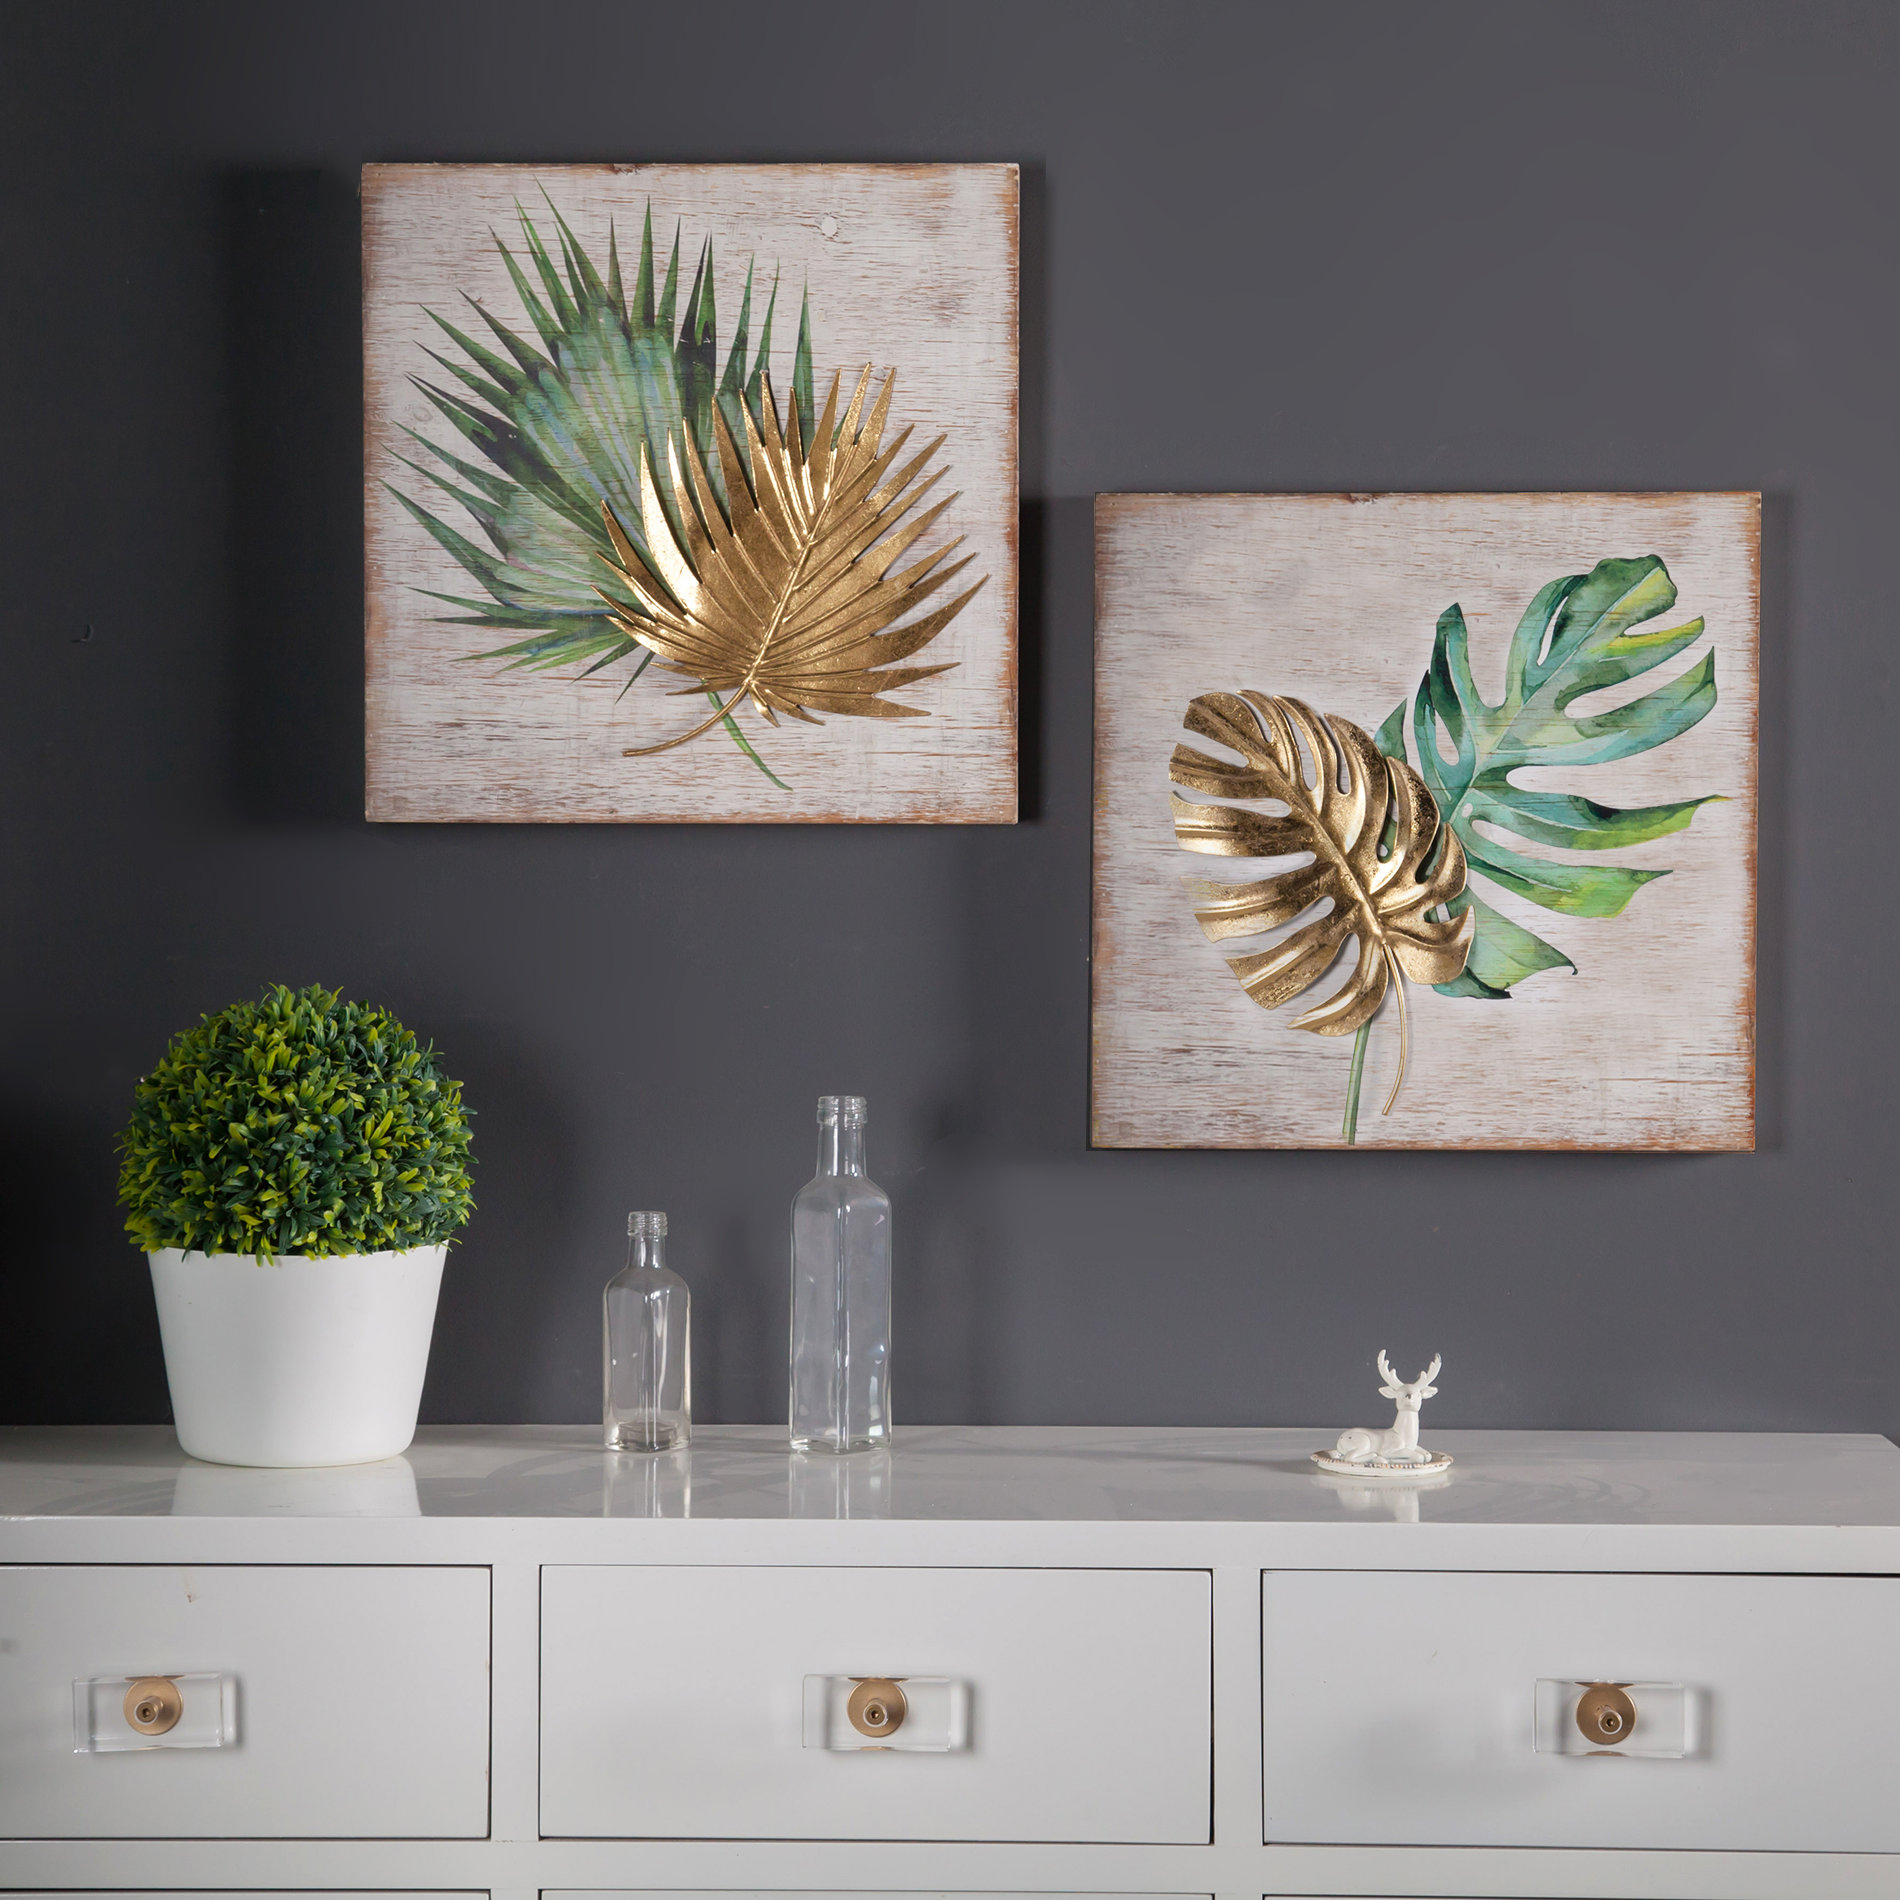 2 Piece Wall Decor Set | Wayfair throughout 2 Piece Trigg Wall Decor Sets (Set of 2) (Image 4 of 30)